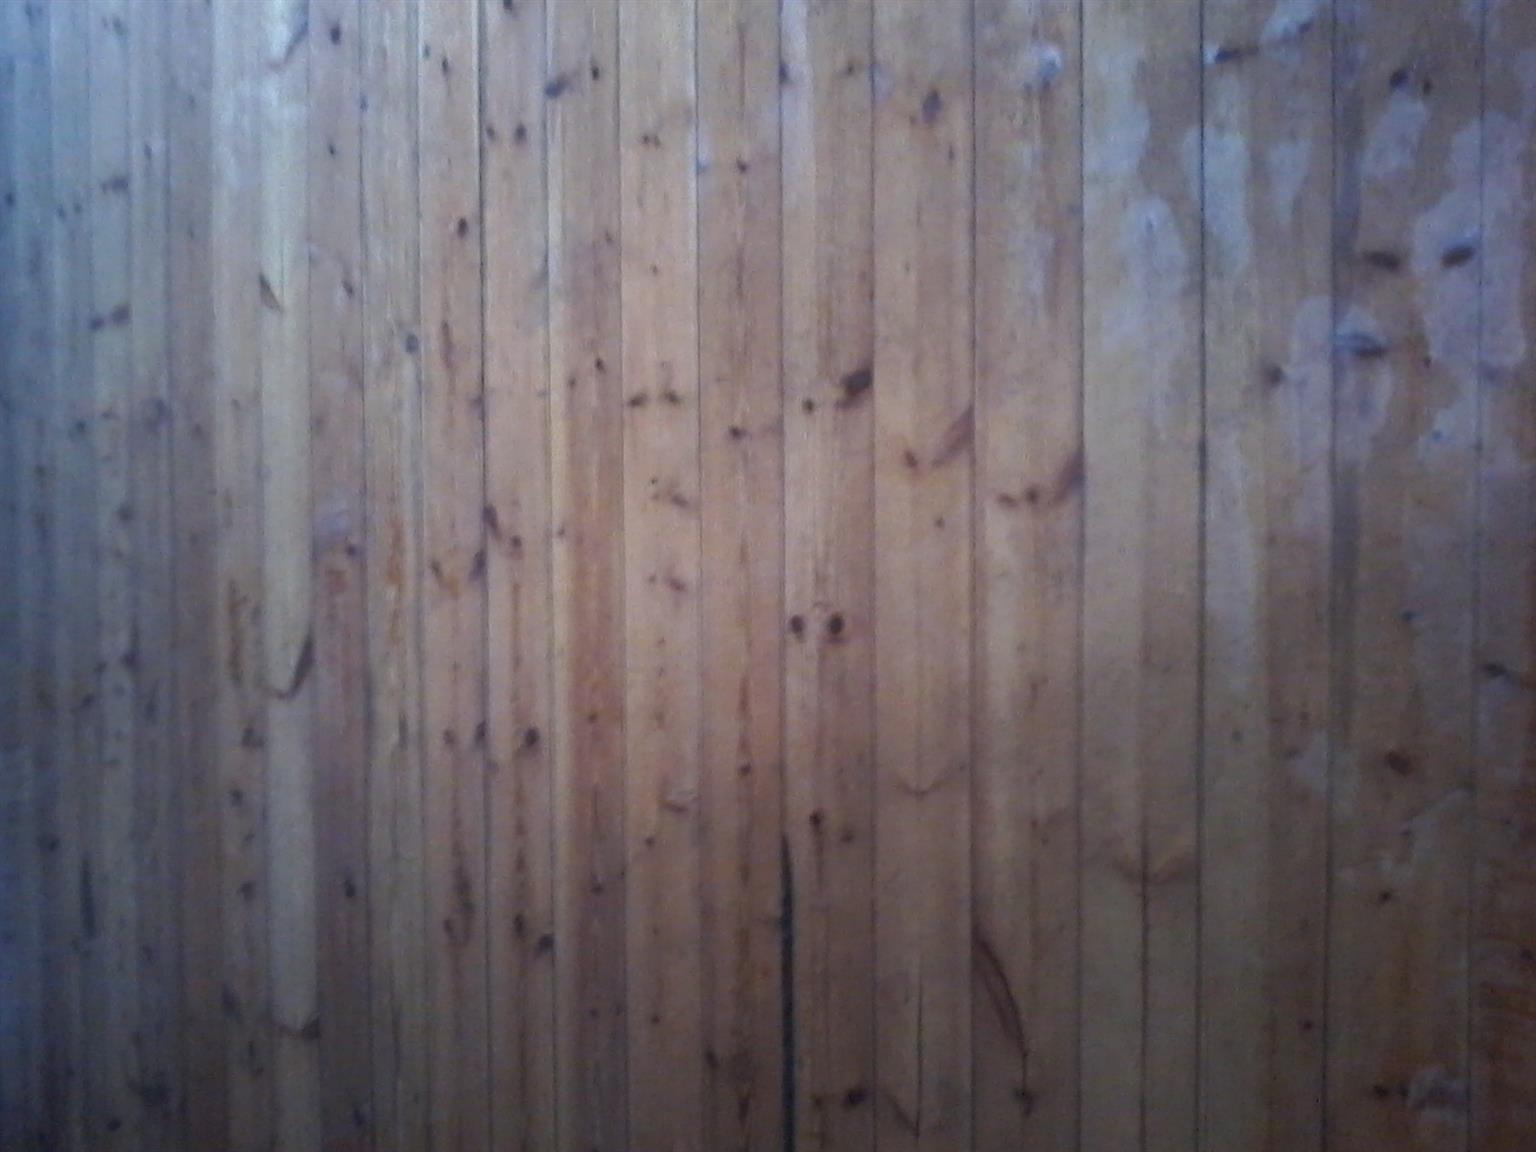 110mm Oregon Pine Floorboards For Sale In Good Quality Junk Mail